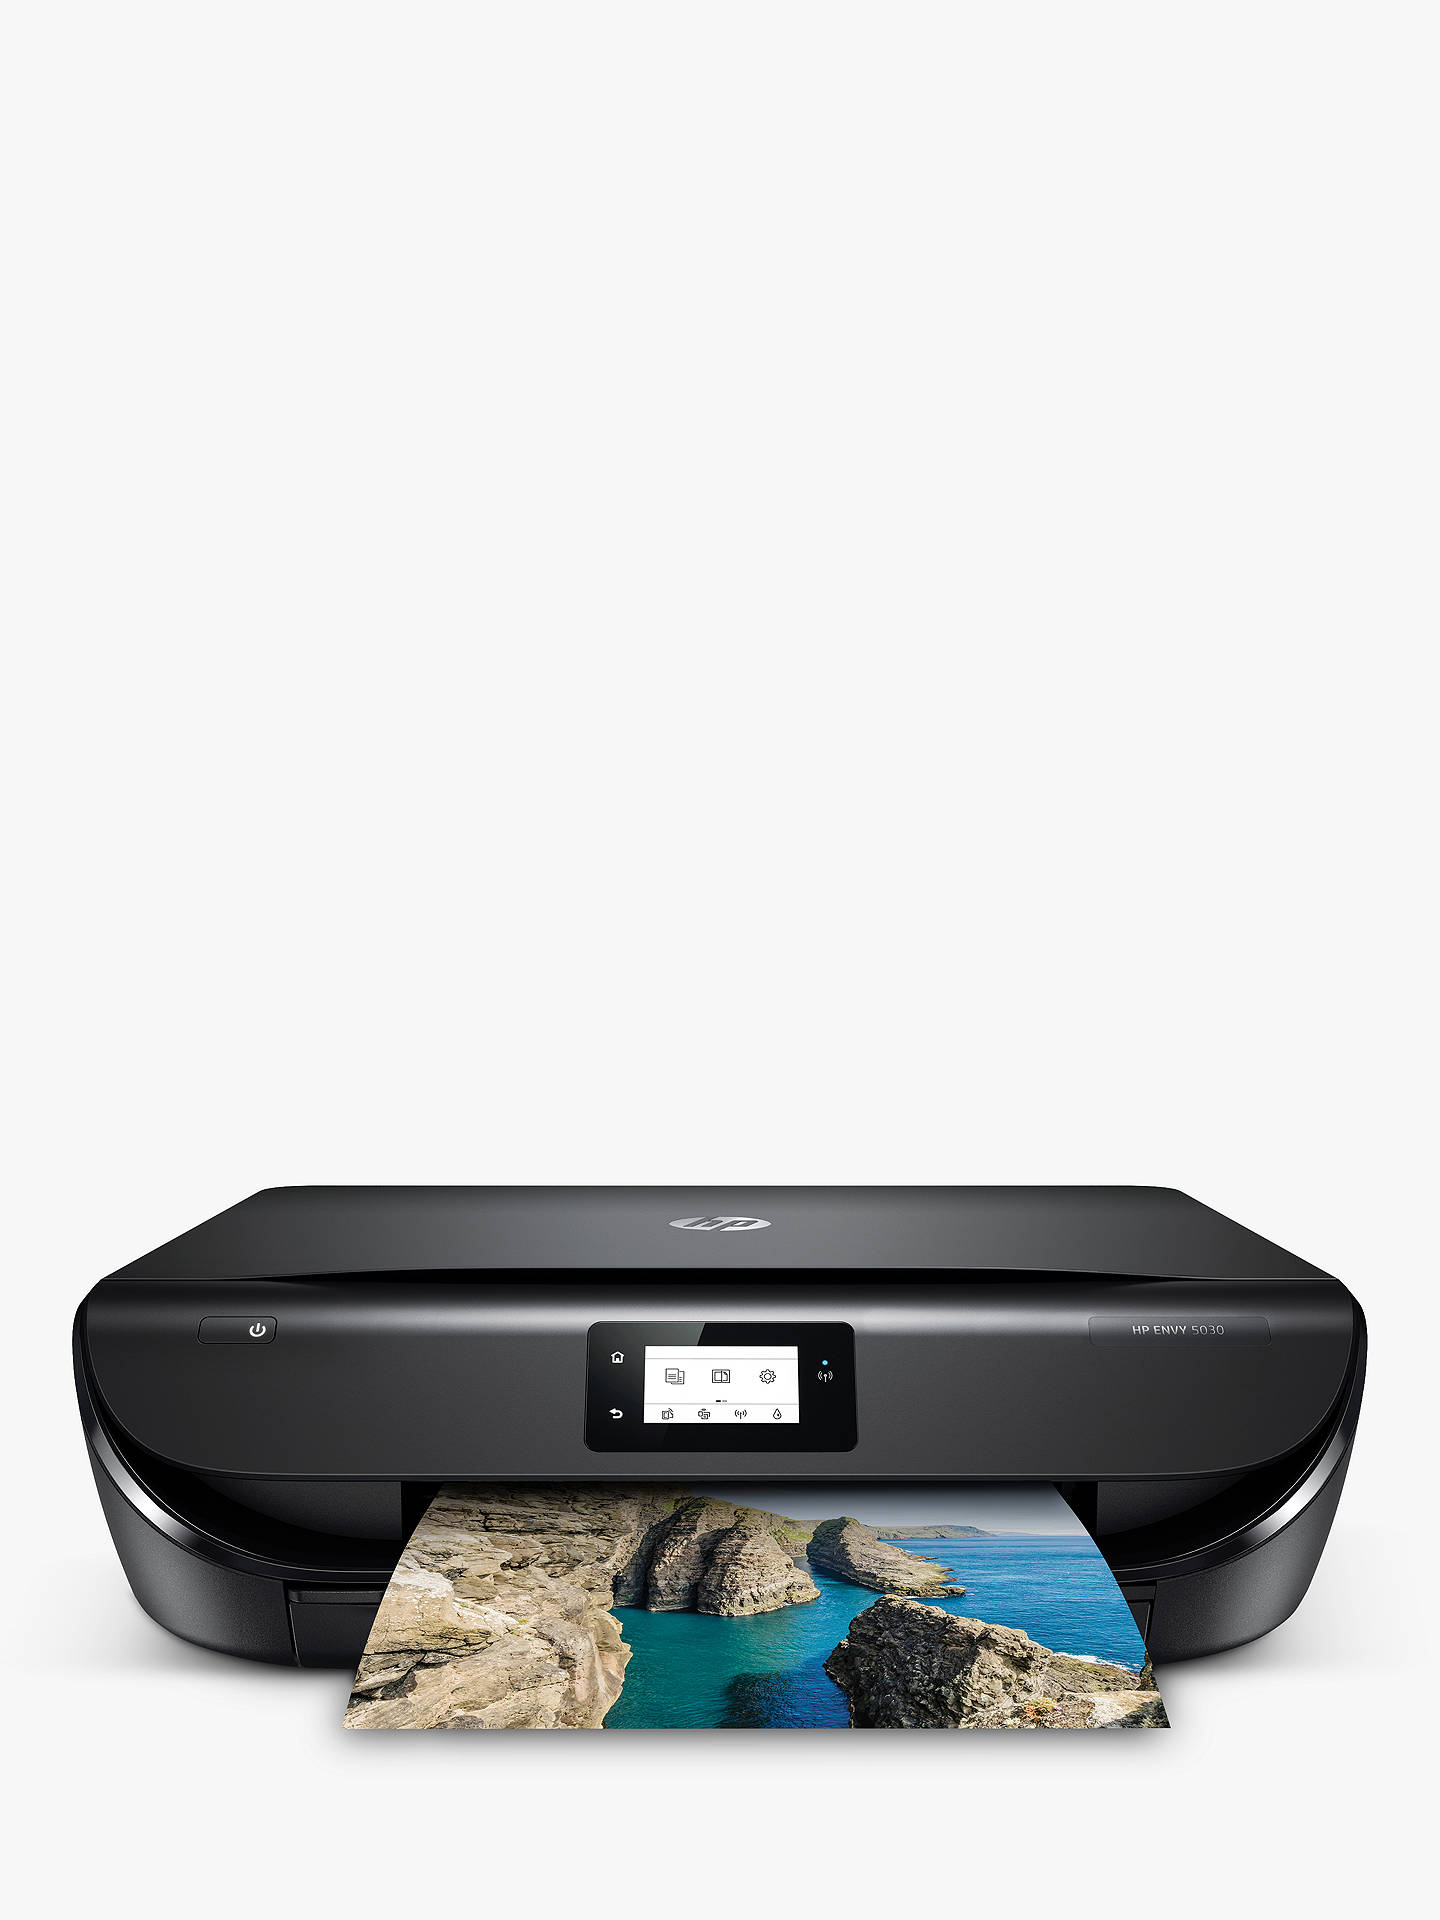 HP ENVY 5030 All-in-One Wireless Printer with Touch Screen, HP Instant Ink  Compatible with 3 Months Trial